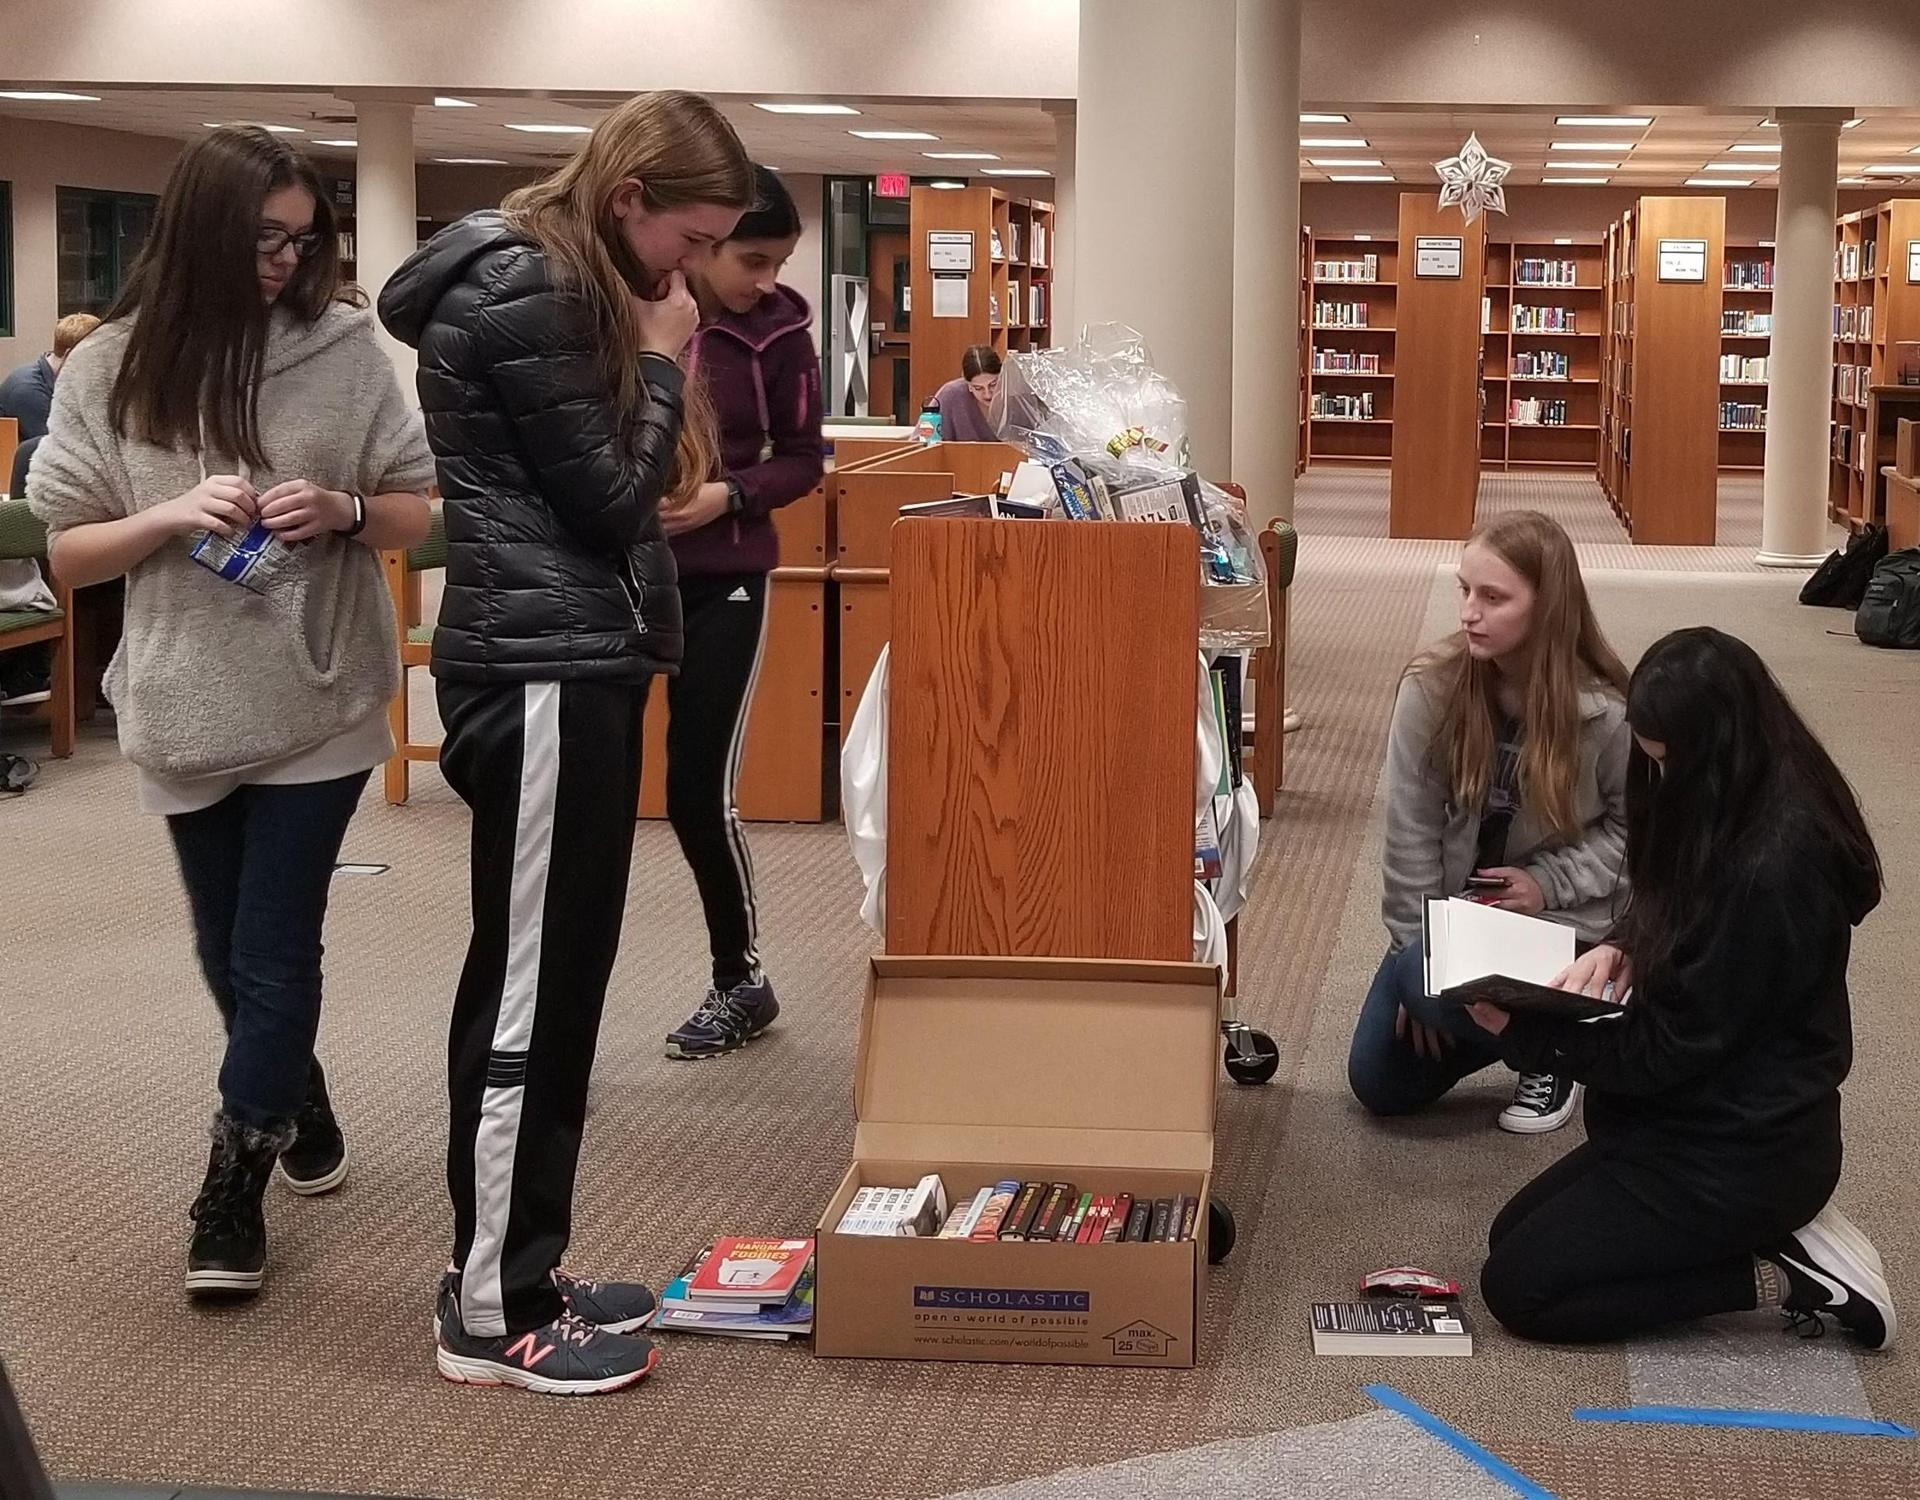 Several female students look at books on a metal cart